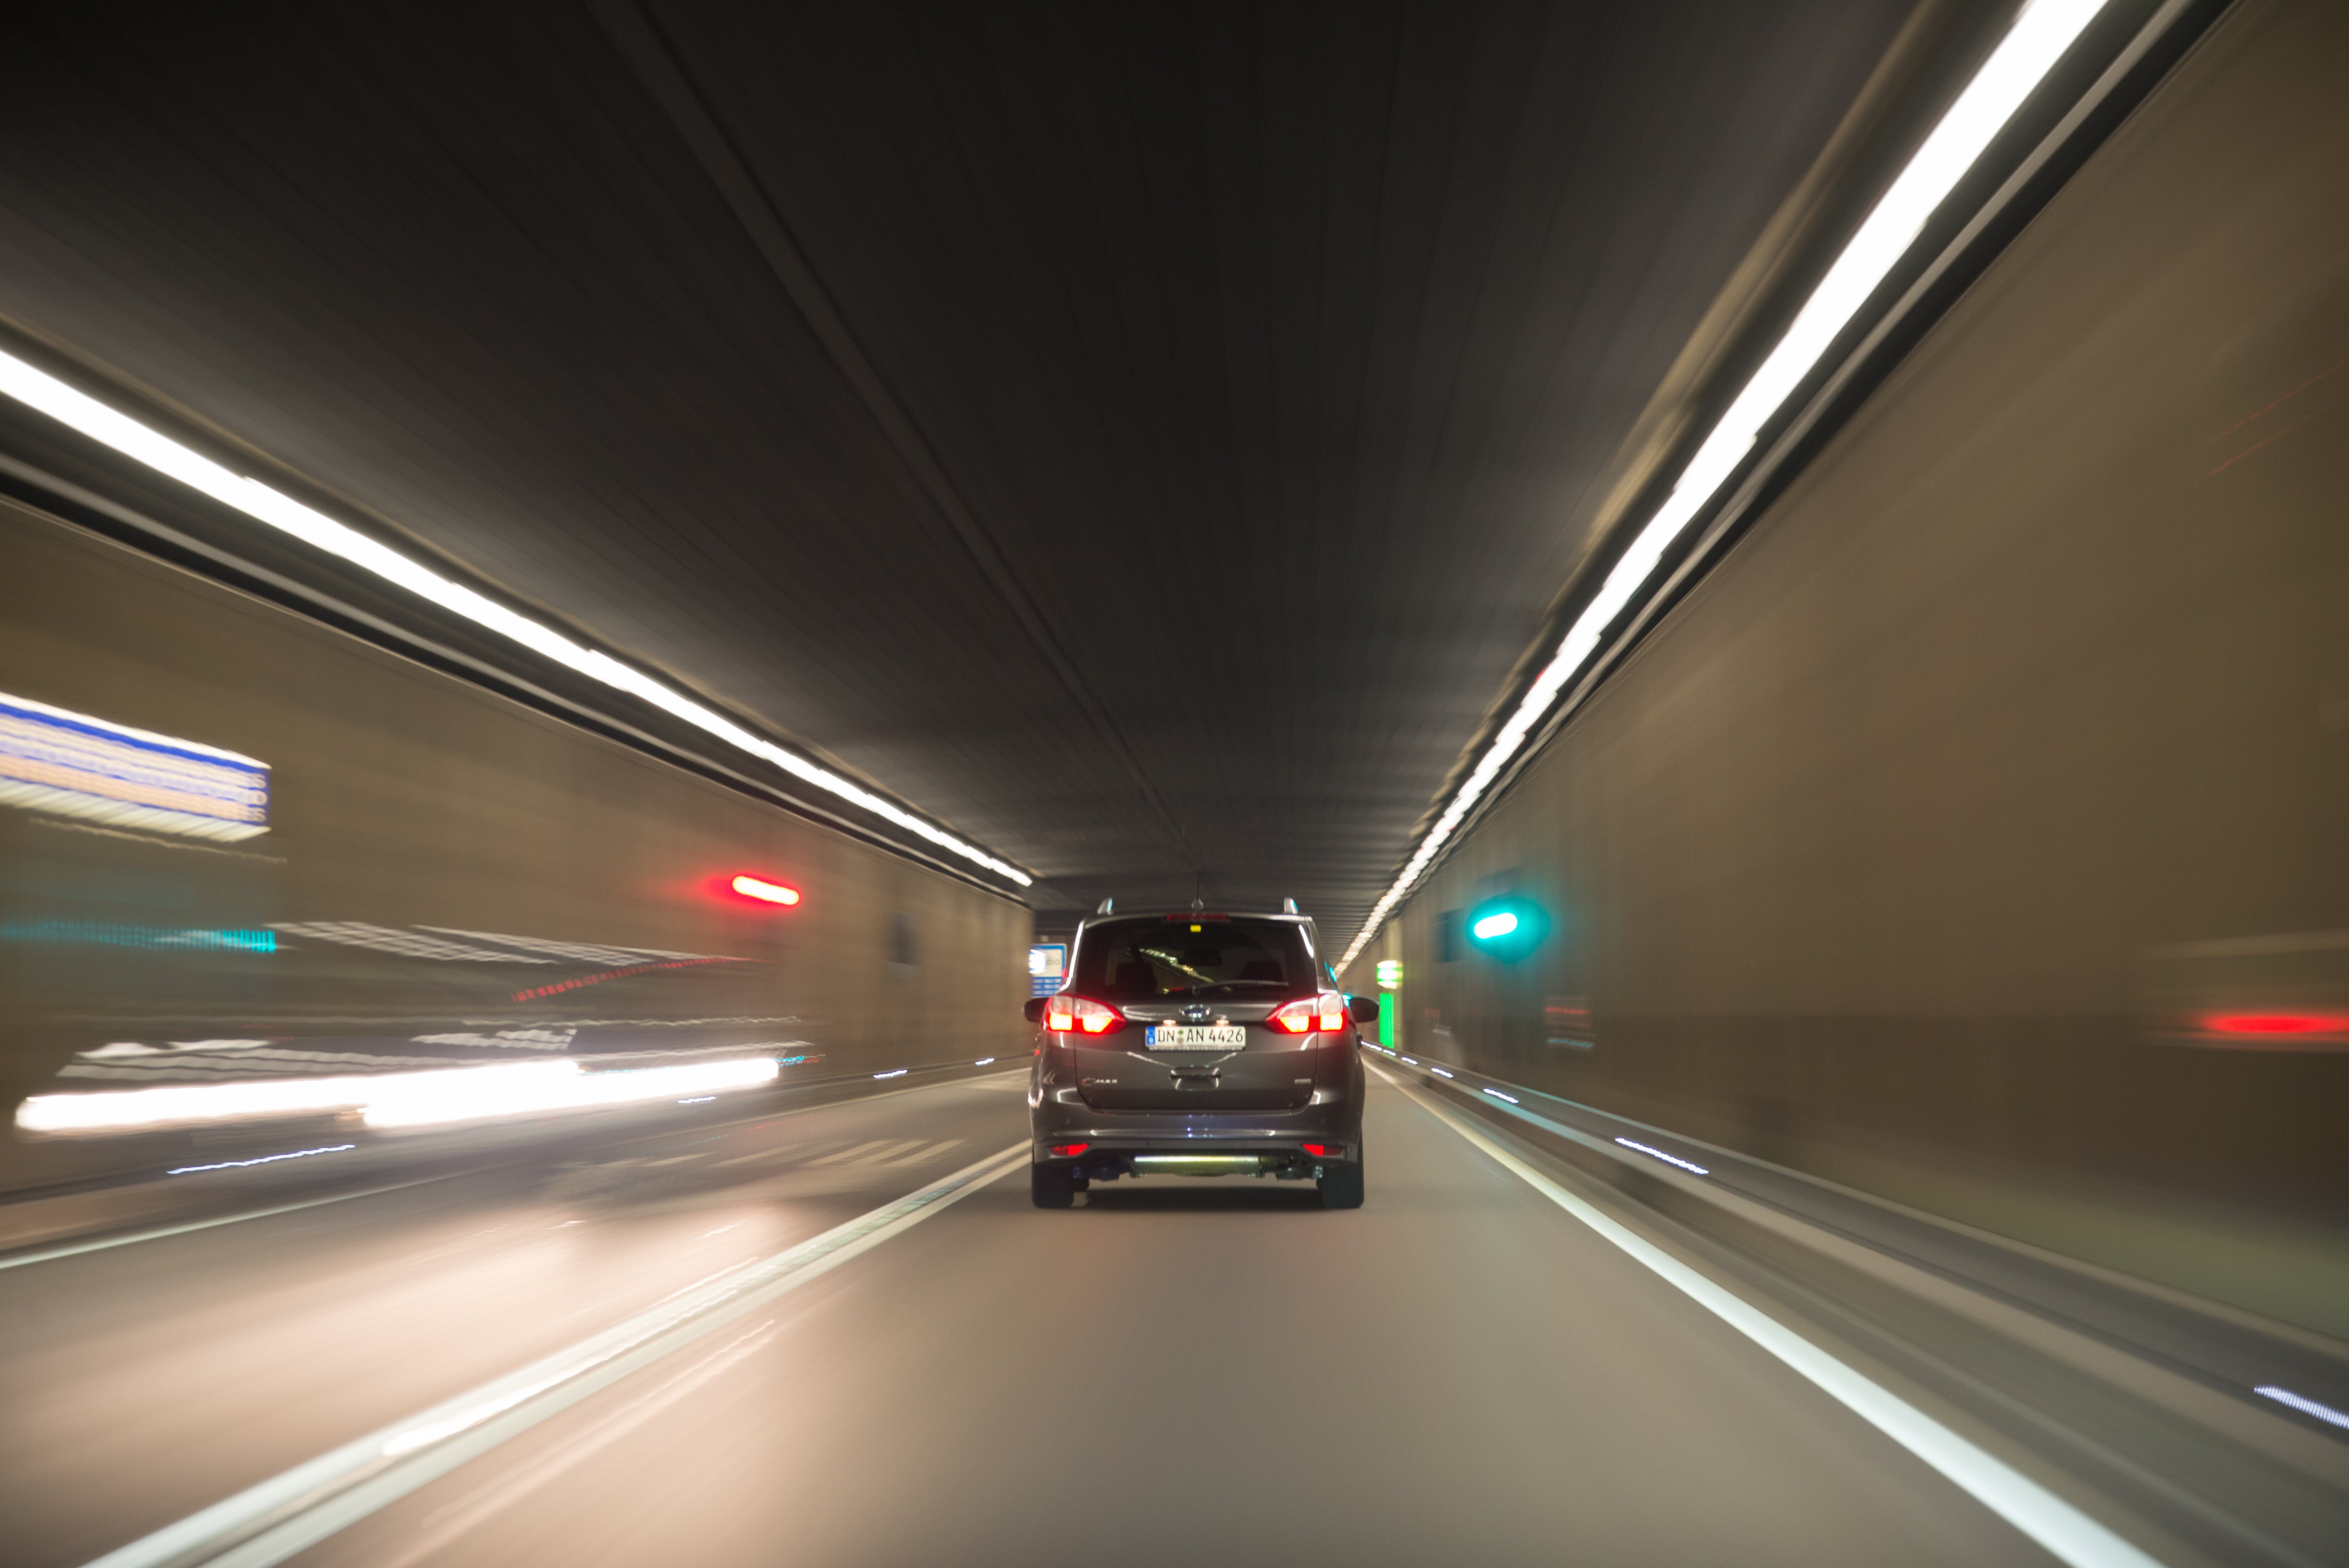 Free stock photo of road, lights, car, tunnel